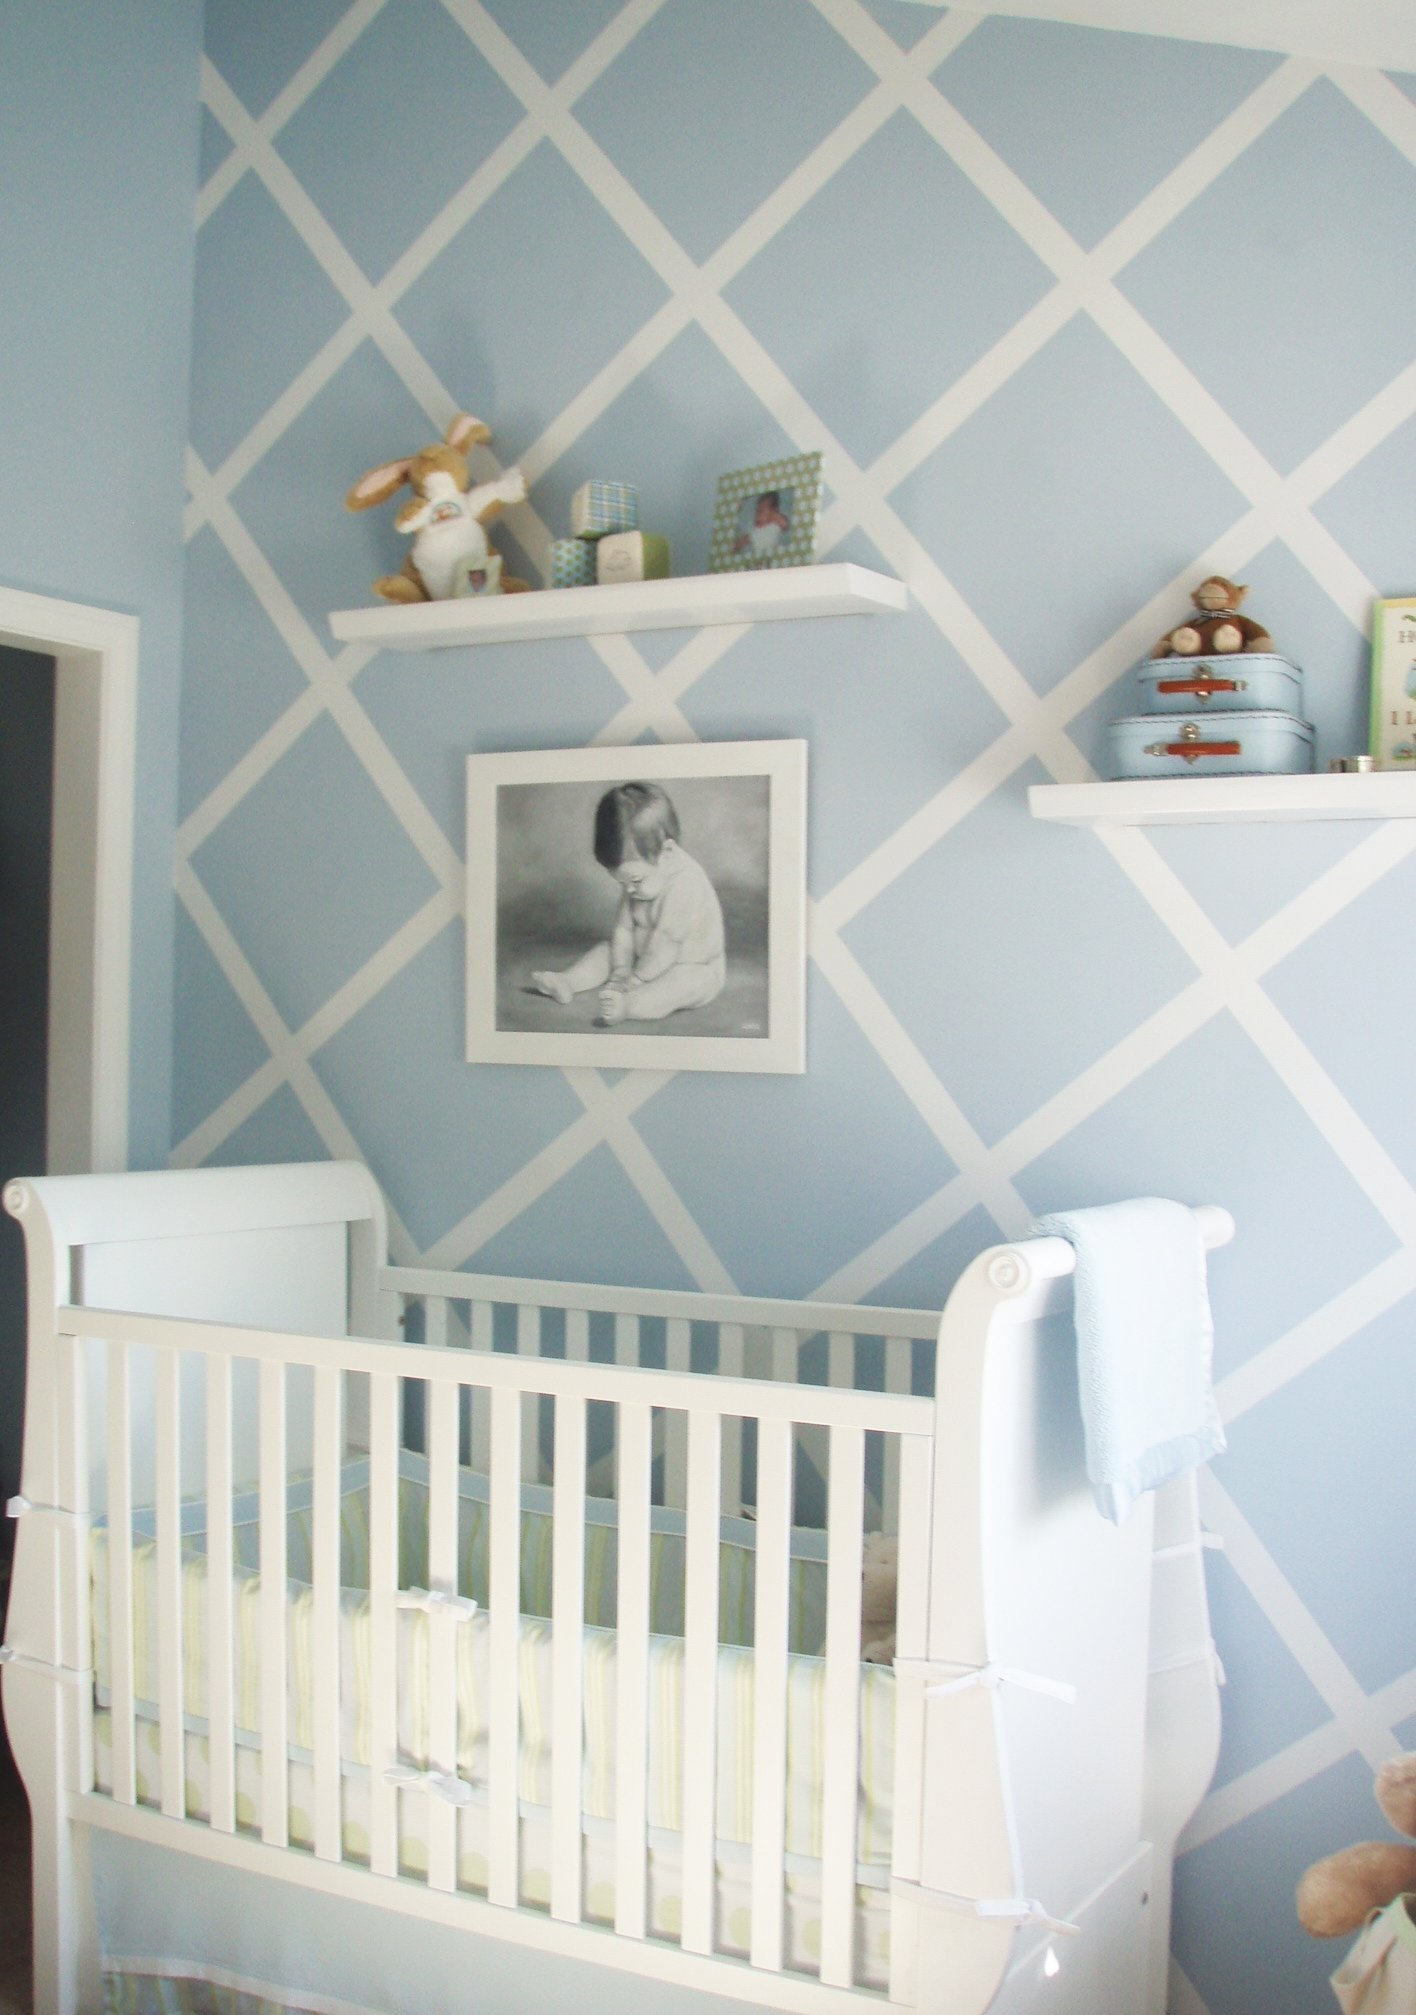 10 Trendy Baby Boy Paint Ideas For Room baby nursery ideas scenic baby boy room paint ideas as wells teen 2020